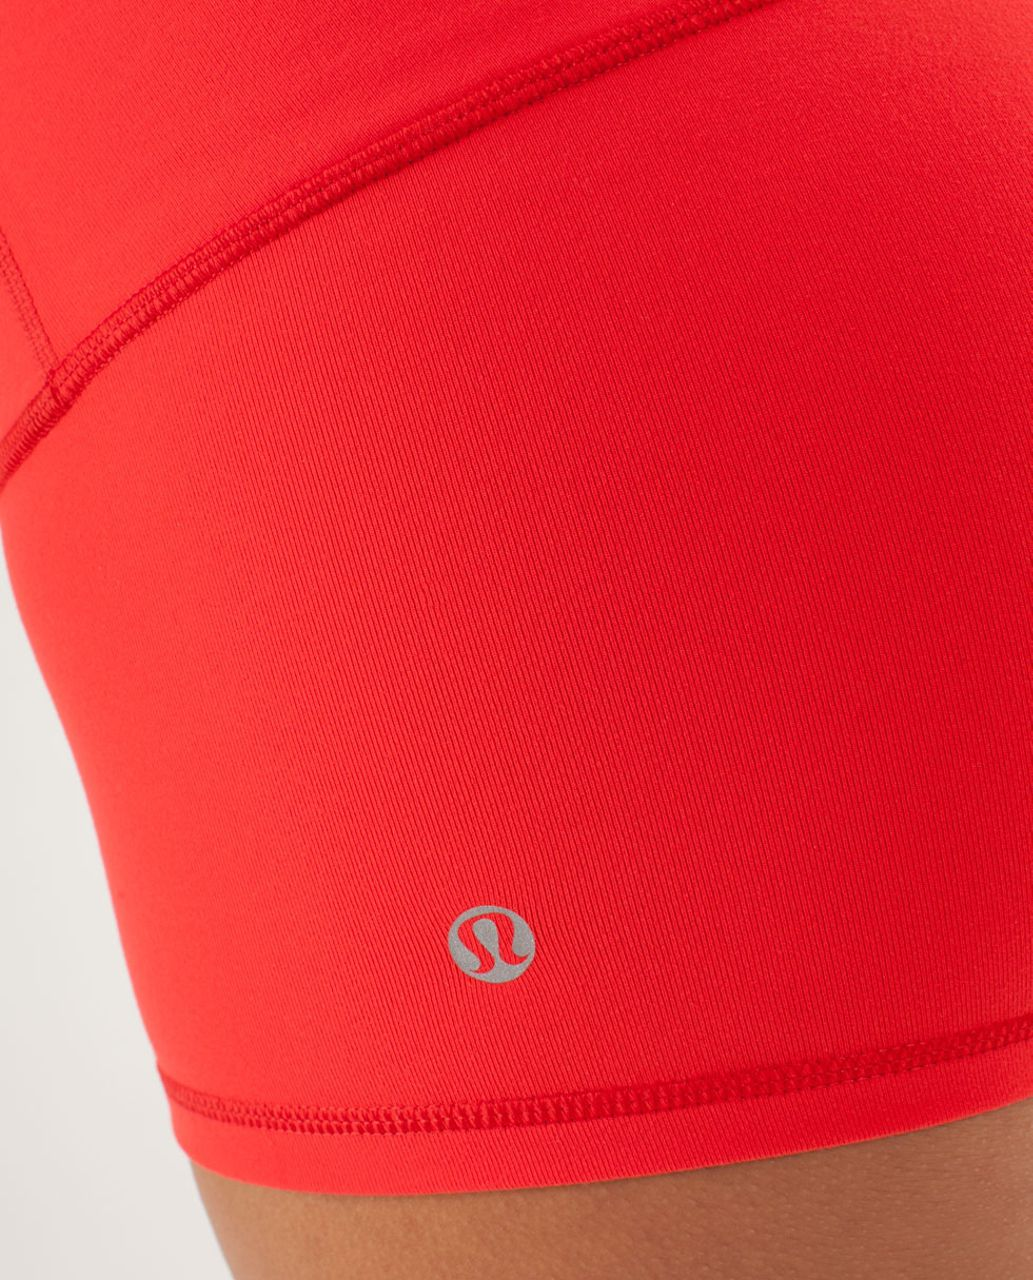 Lululemon Boogie Short - Love Red / Slope Stripe Love Red Heathered Fiery Red